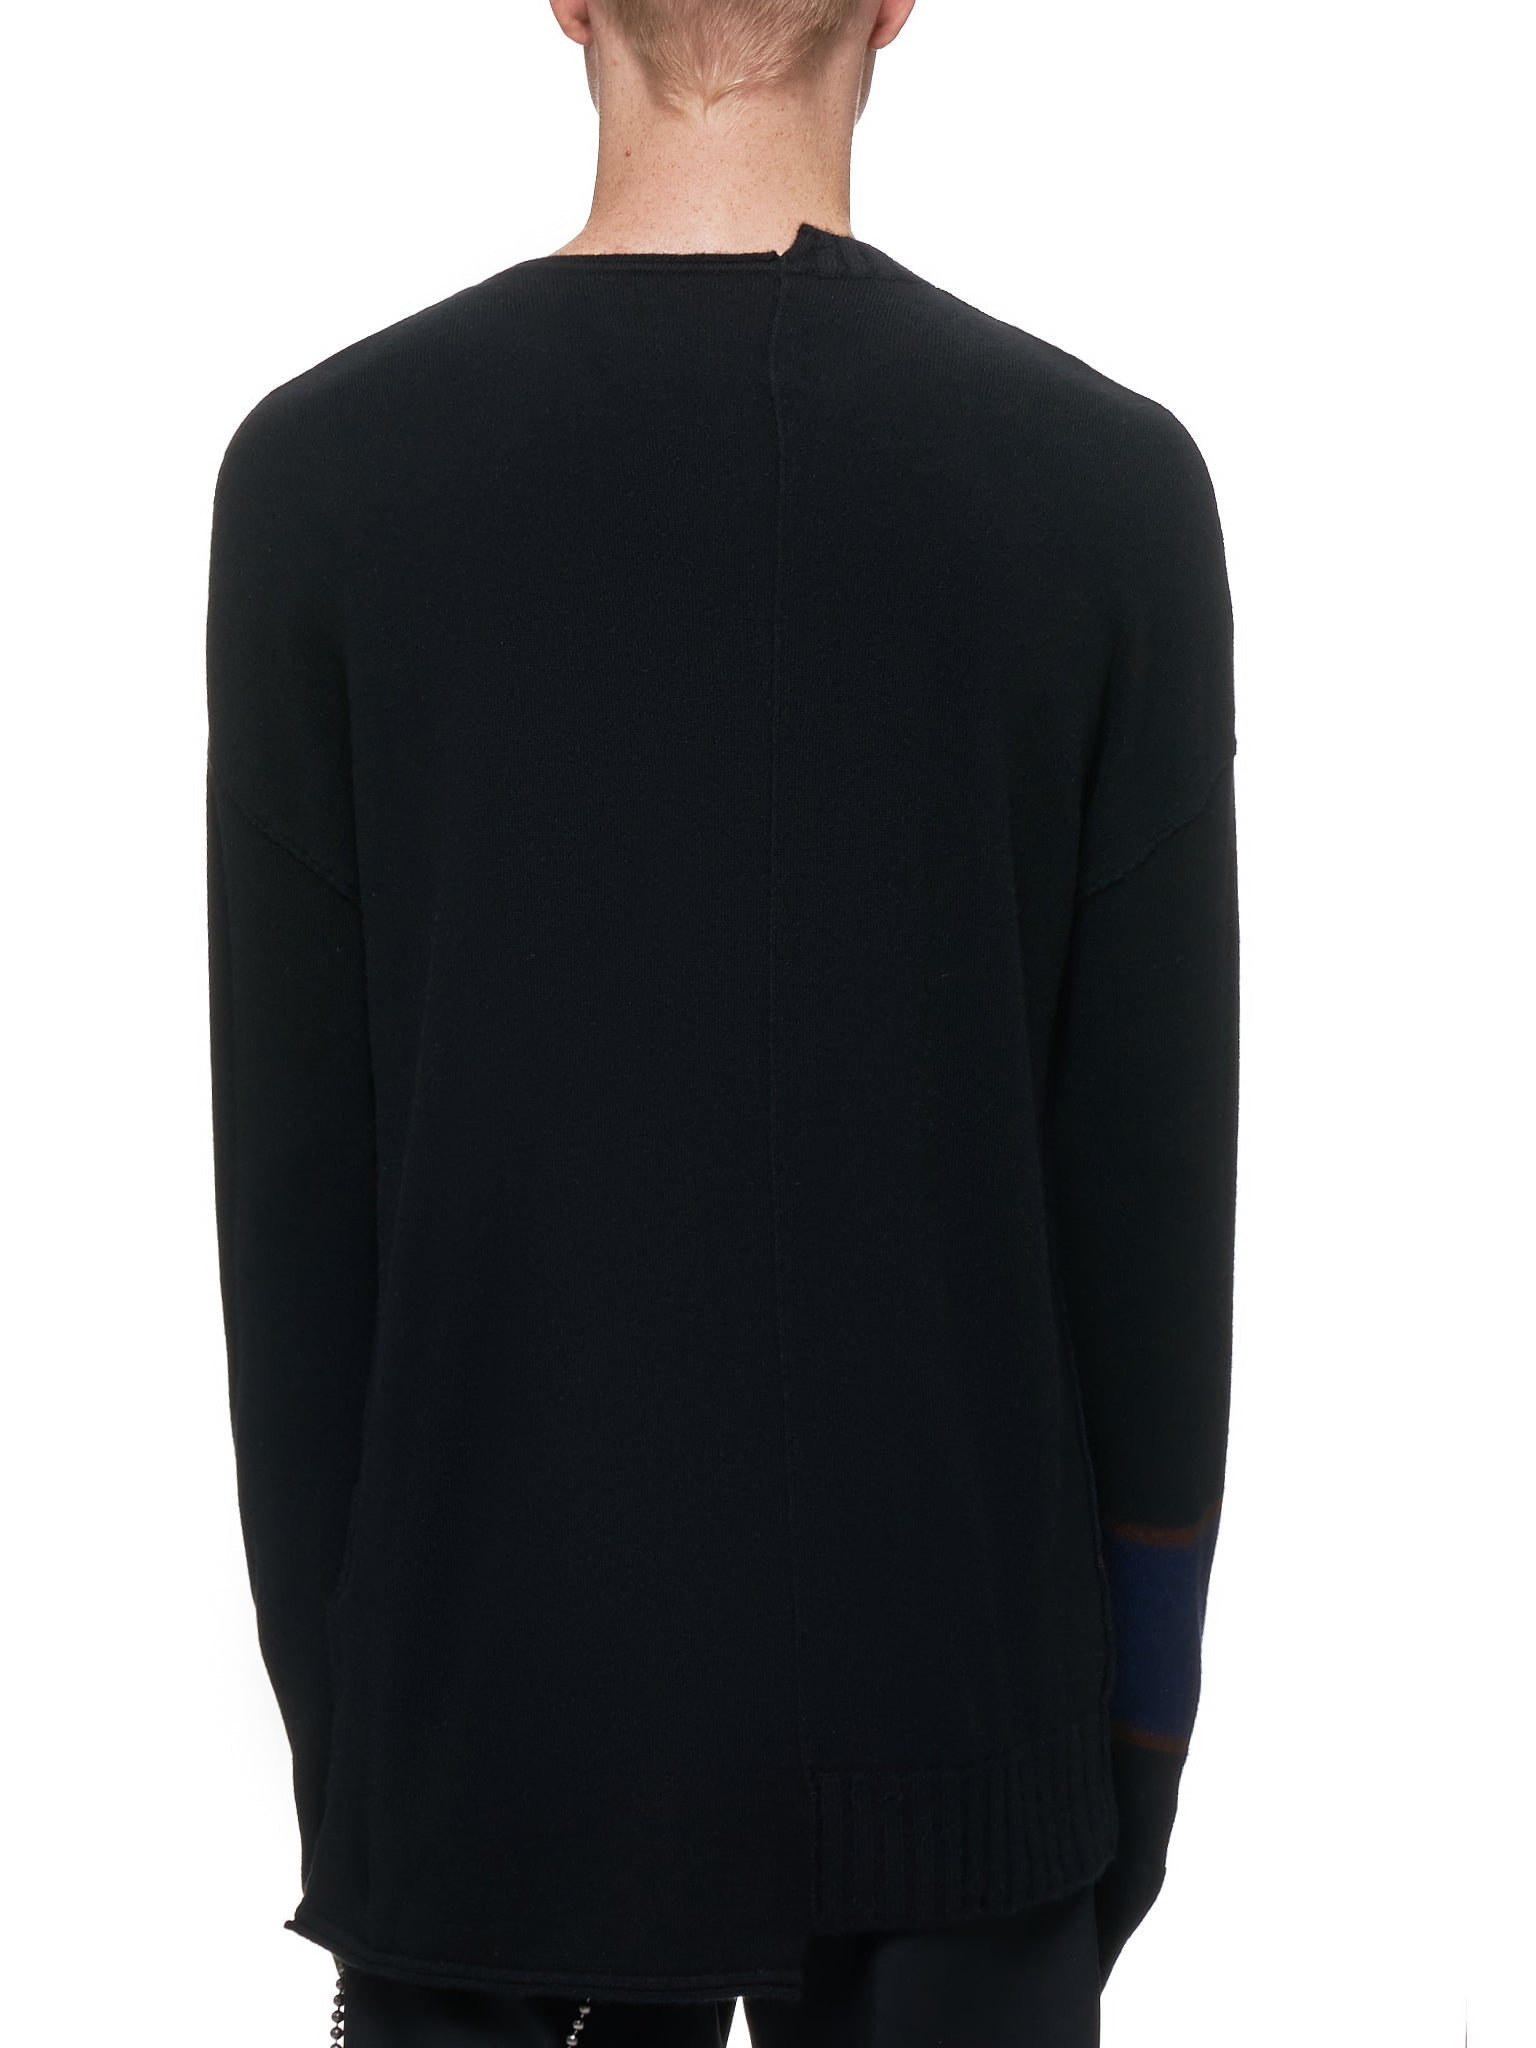 Ziggy Chen Sweater - Hlorenzo Back